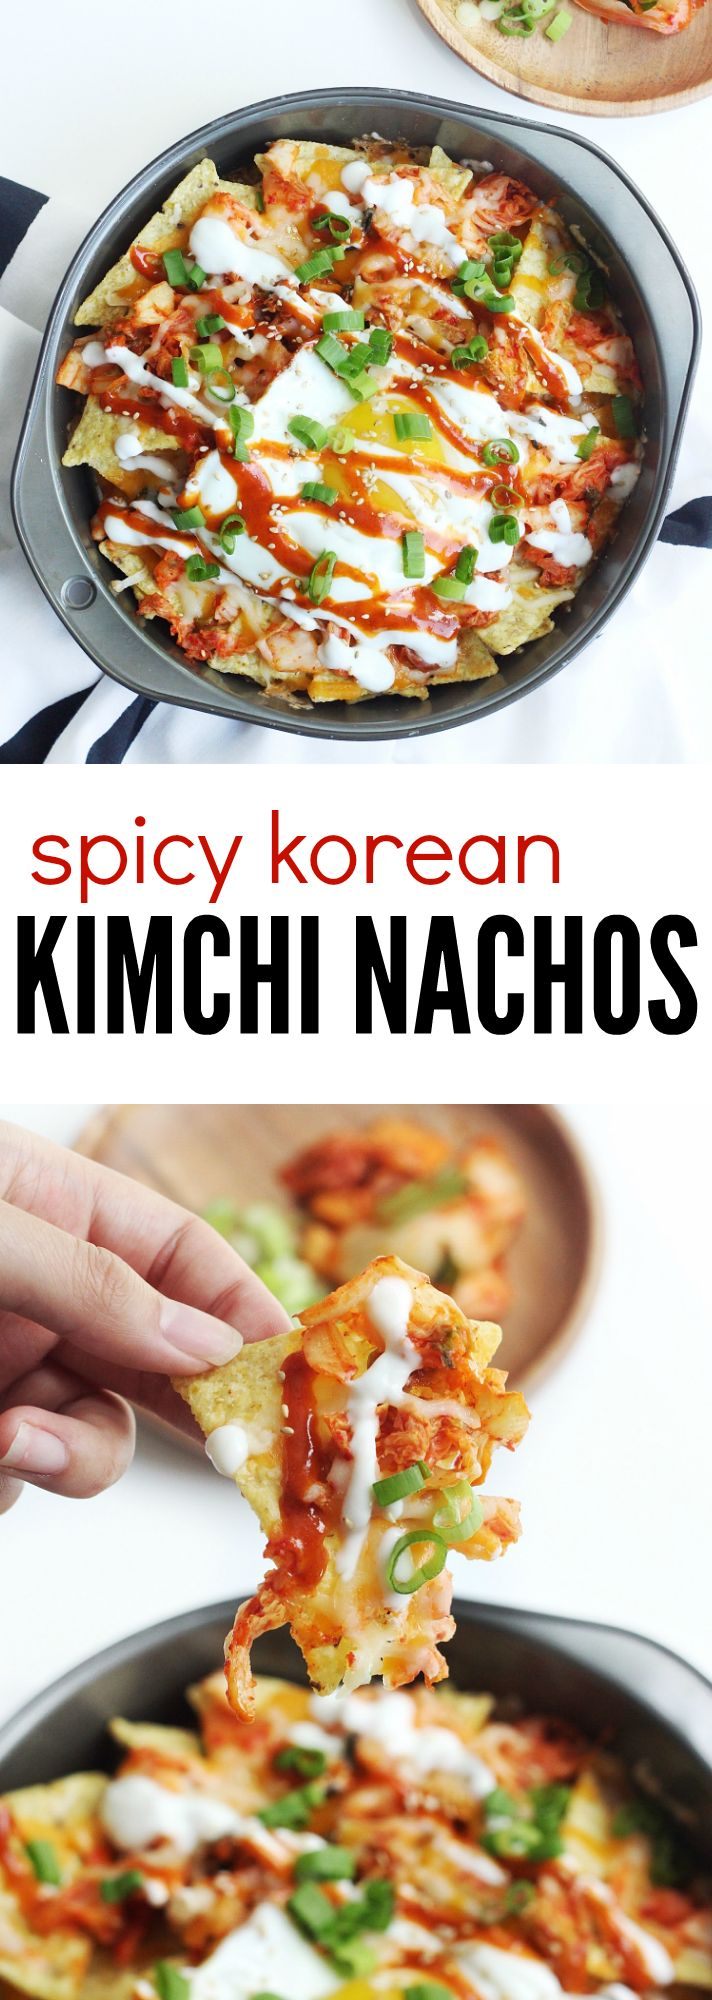 Spicy and Cheesy Korean Kimchi Nachos! The most delicious Asian fusion snack that will definitely satisfy your spicy cravings. Topped with eggs, sour cream, green onions, and some delicious spicy sauce, these nachos are unique and yummy!